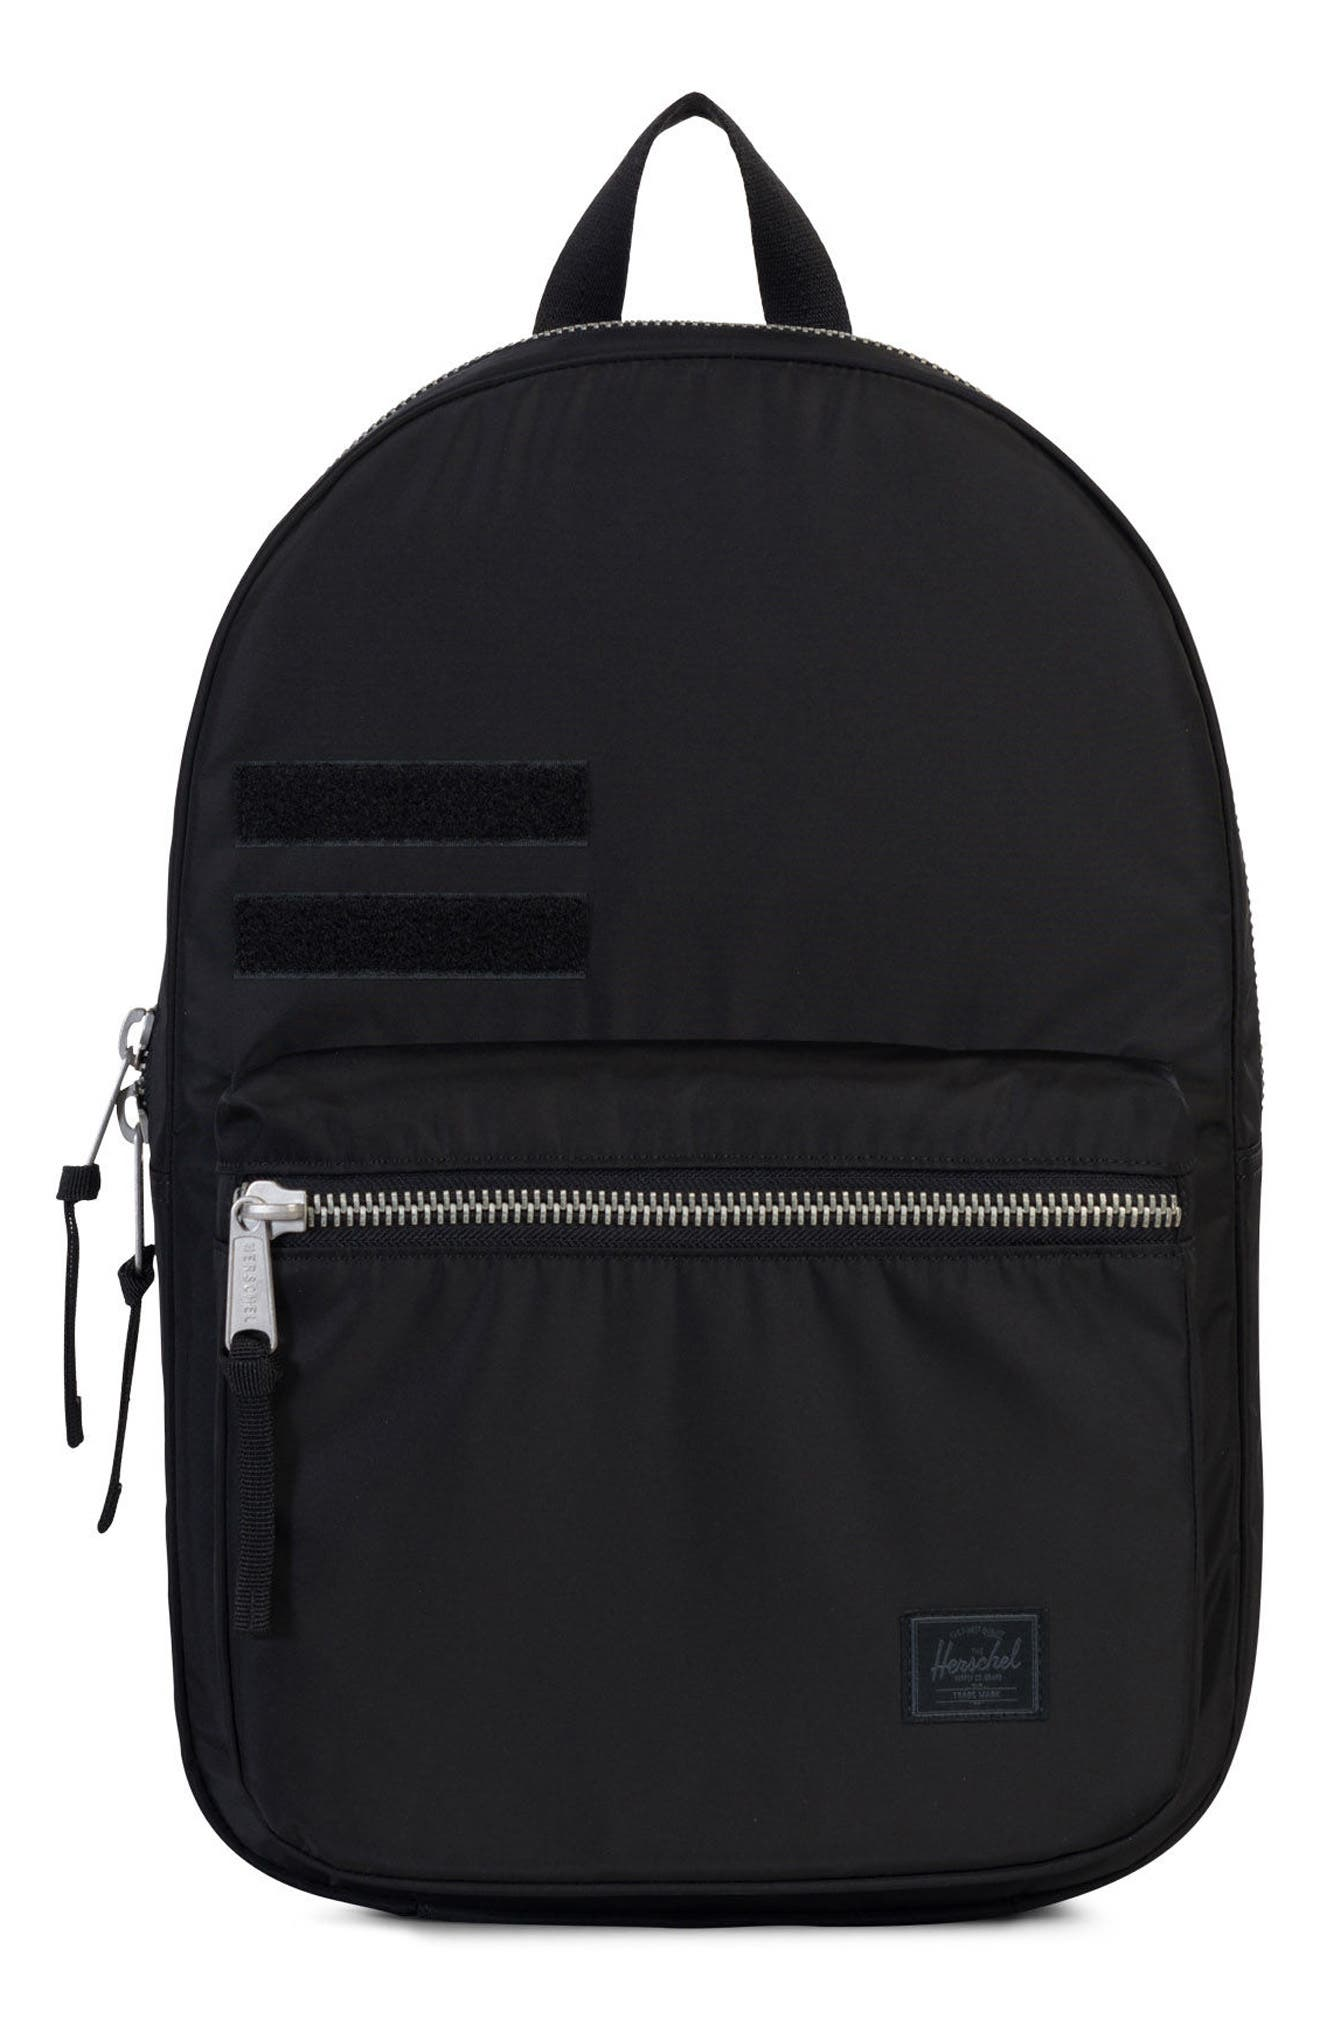 Lawson Surplus Collection Backpack,                             Main thumbnail 2, color,